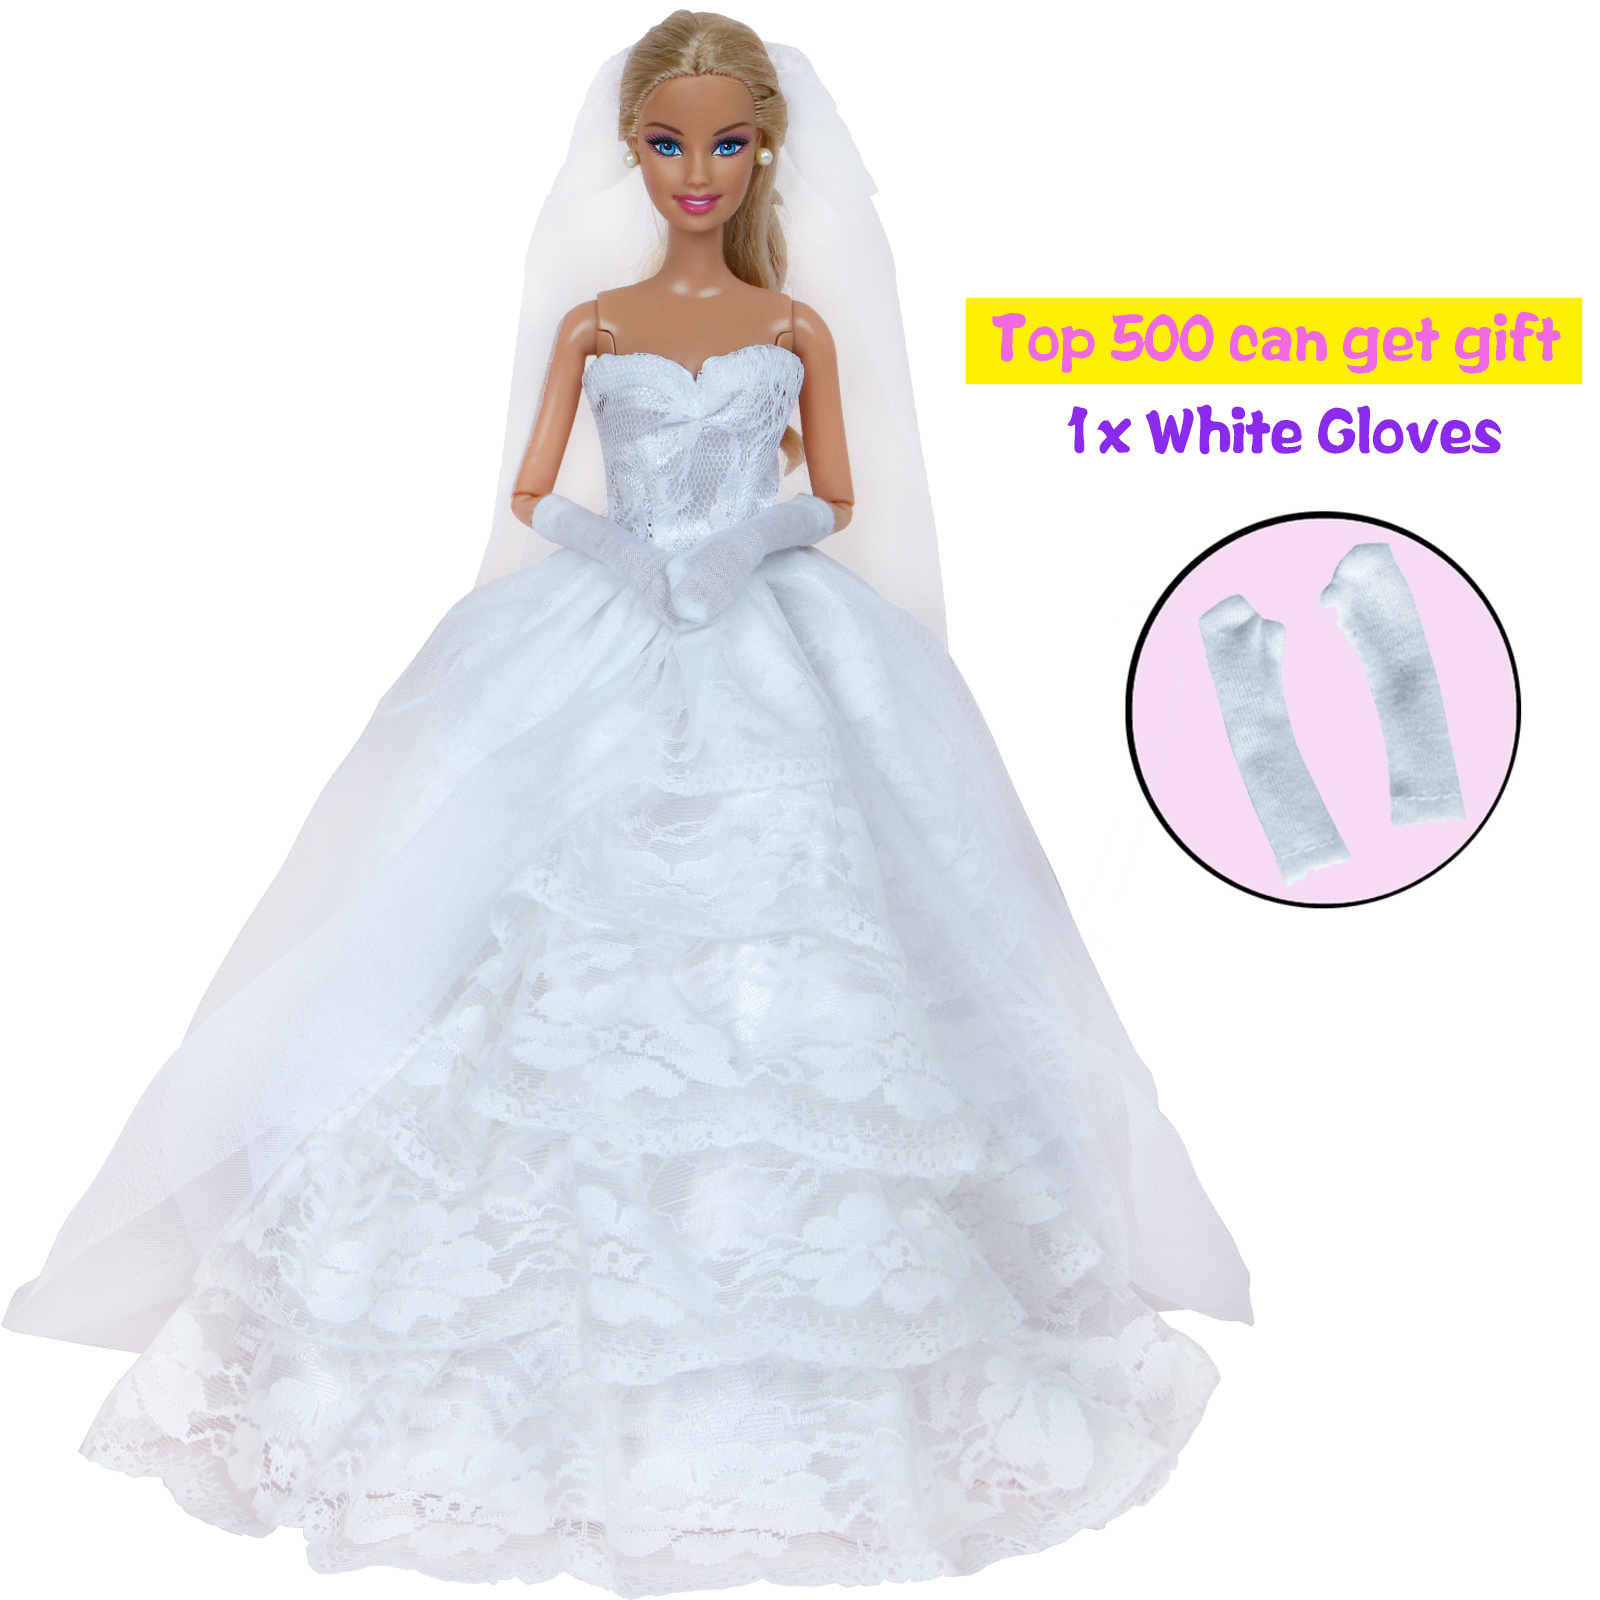 Barbie Contemporary (1973-Now) Dolls & Bears 6-pack Handmade Wedding Dress Party Gown Clothes Outfits for 11.5 inches Dolls